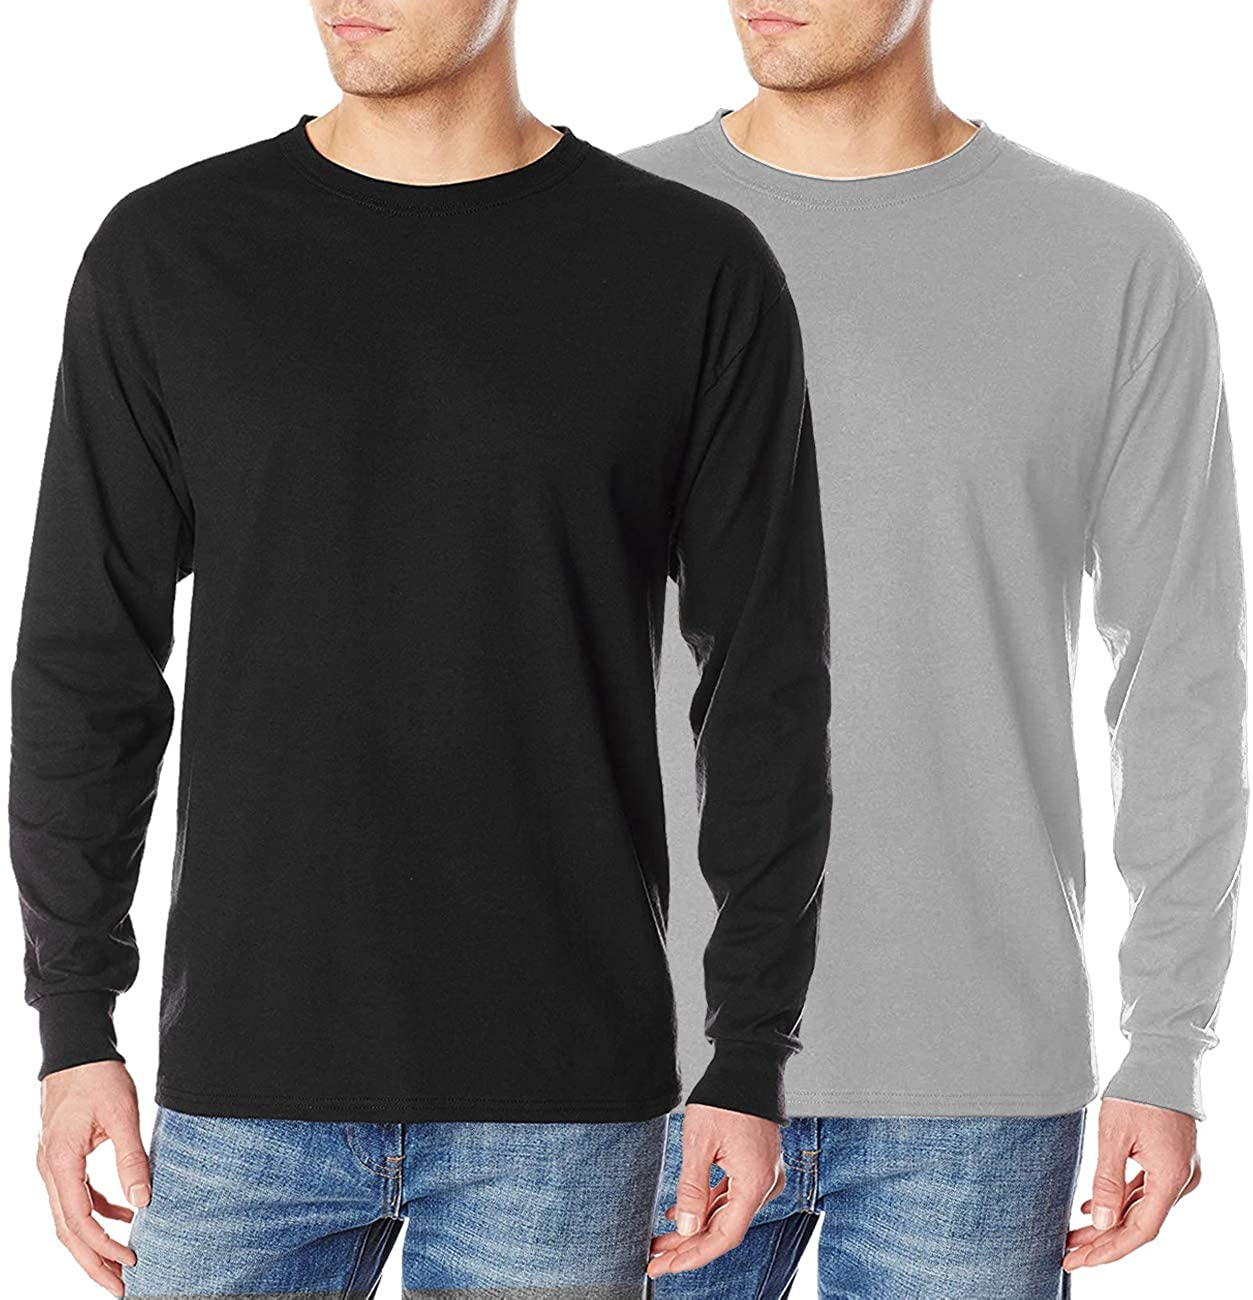 COOFANDY Men's 2 Pack Long Sleeve Shirts Casual Slim Fit T-Shirt Crew Neck Cotton Performance Top